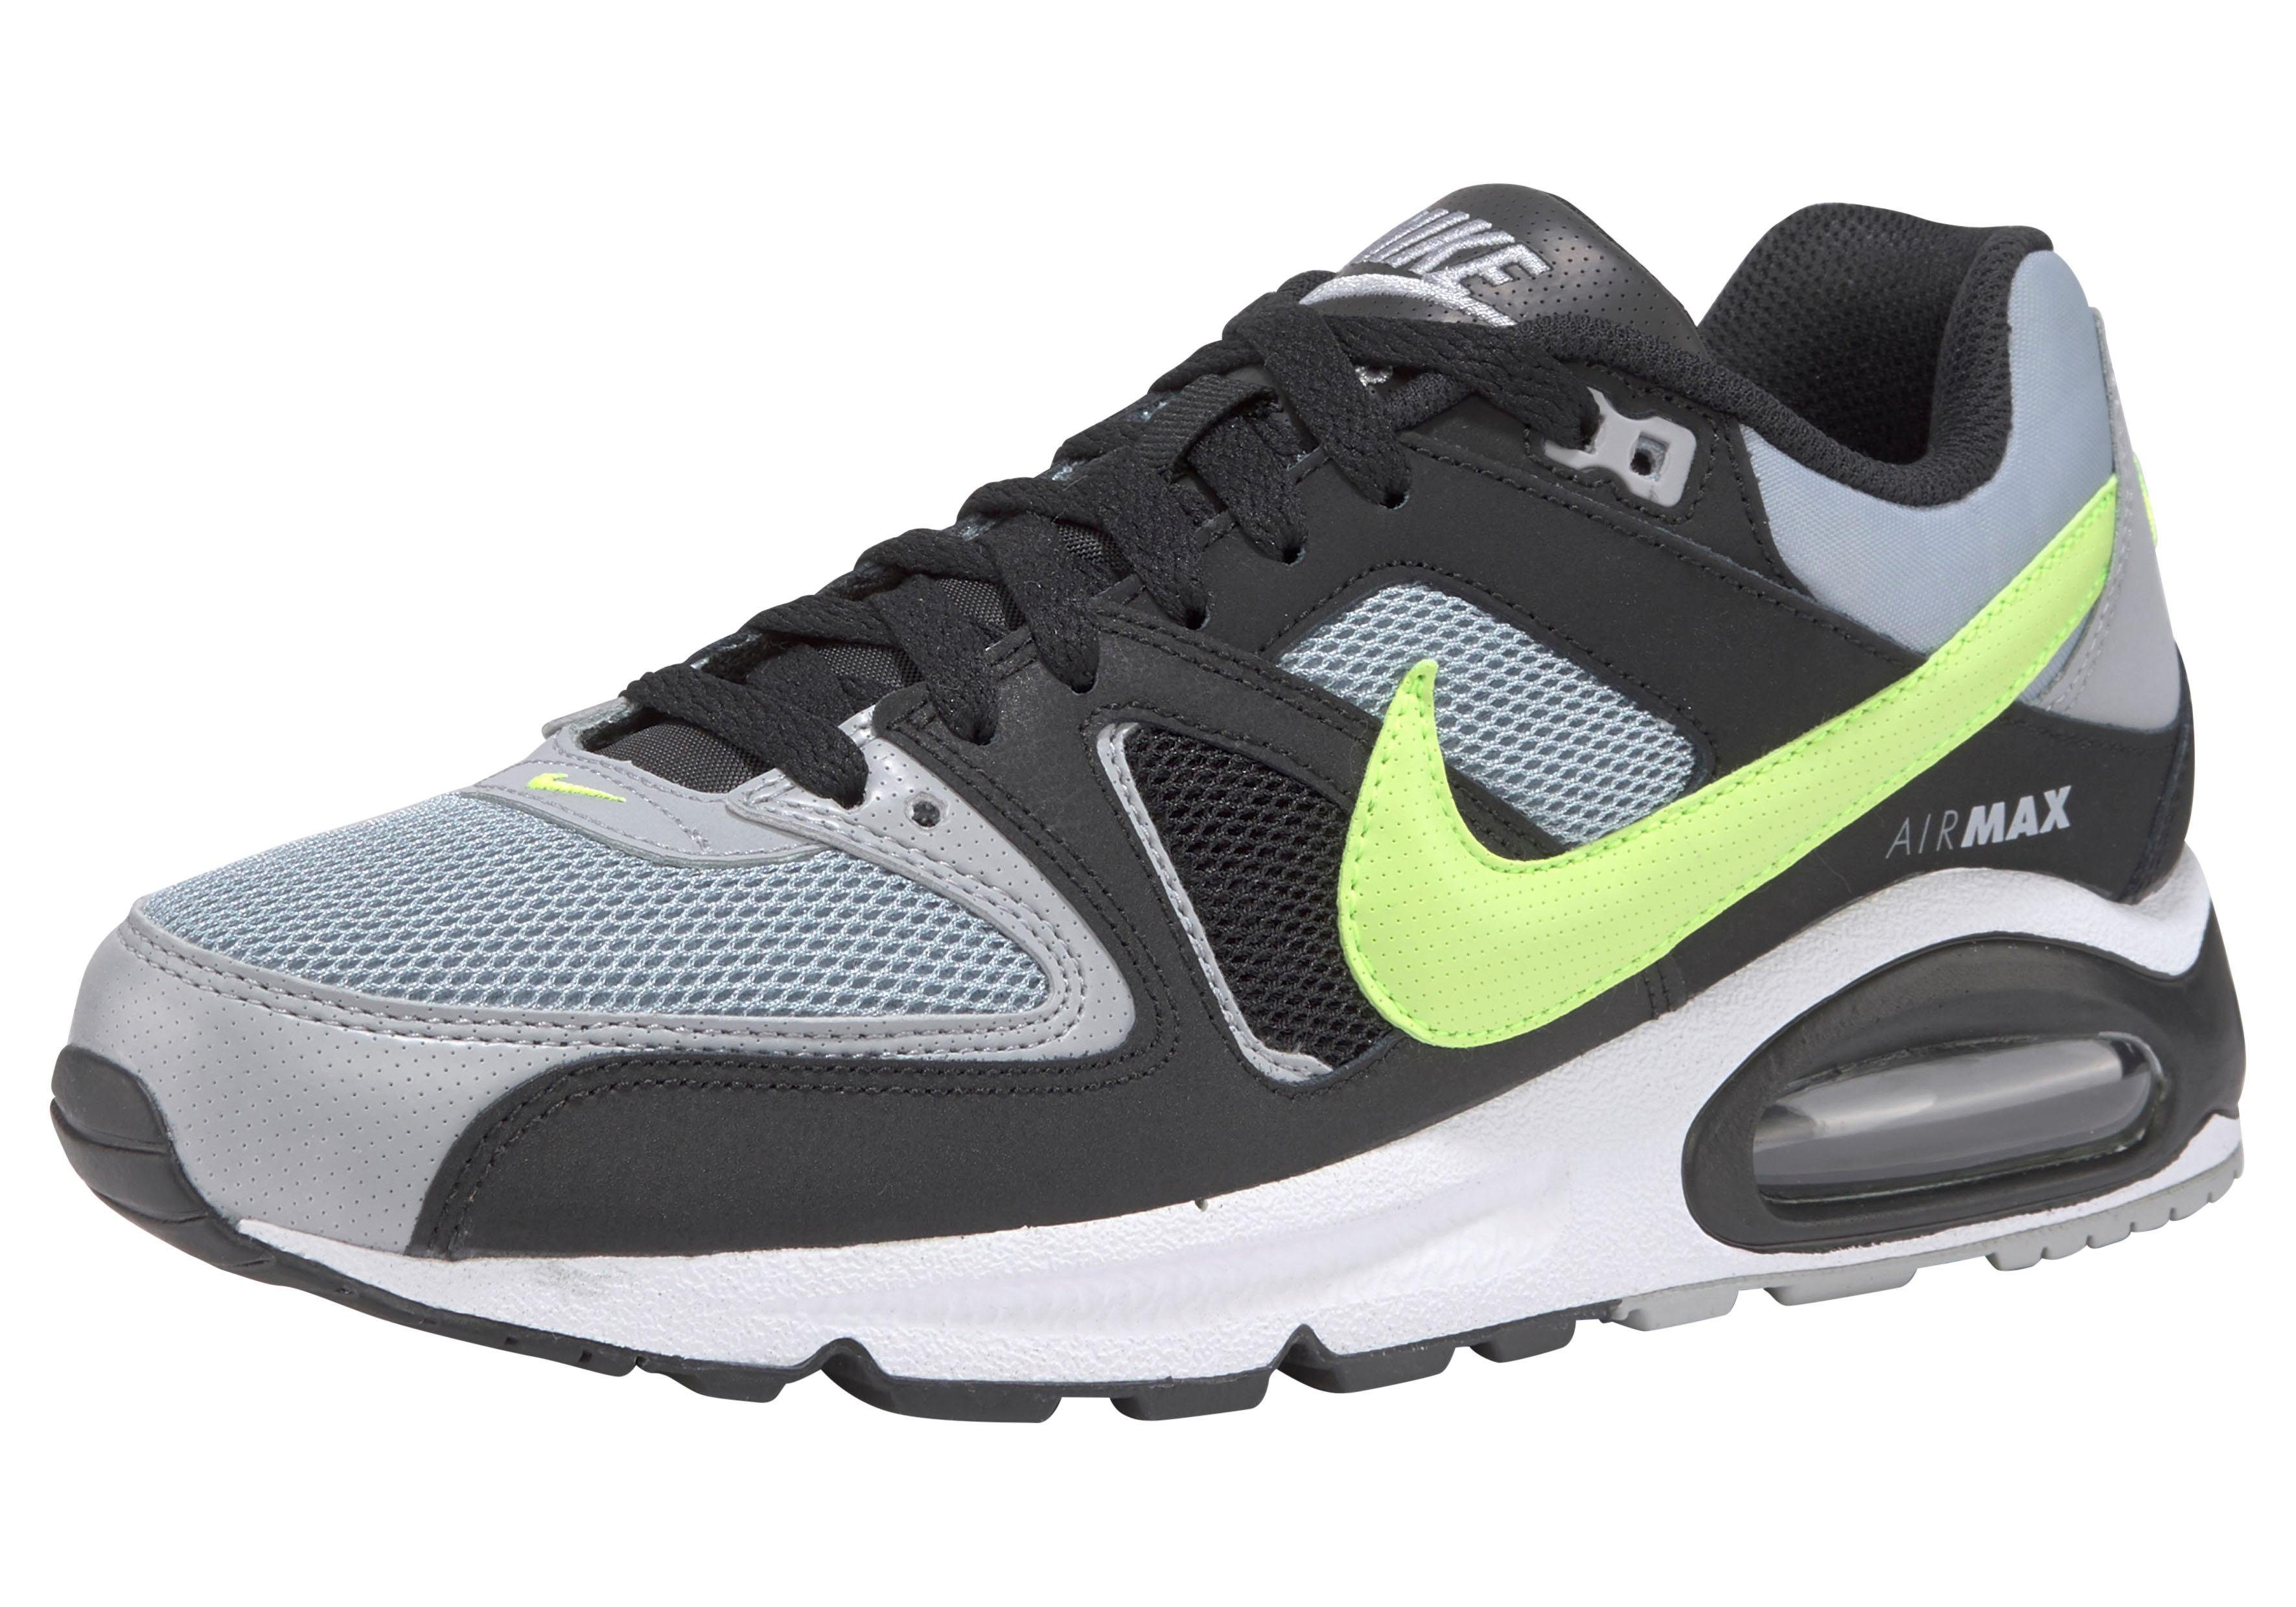 Nike Air Max Command Premium cool grey ab 99,90